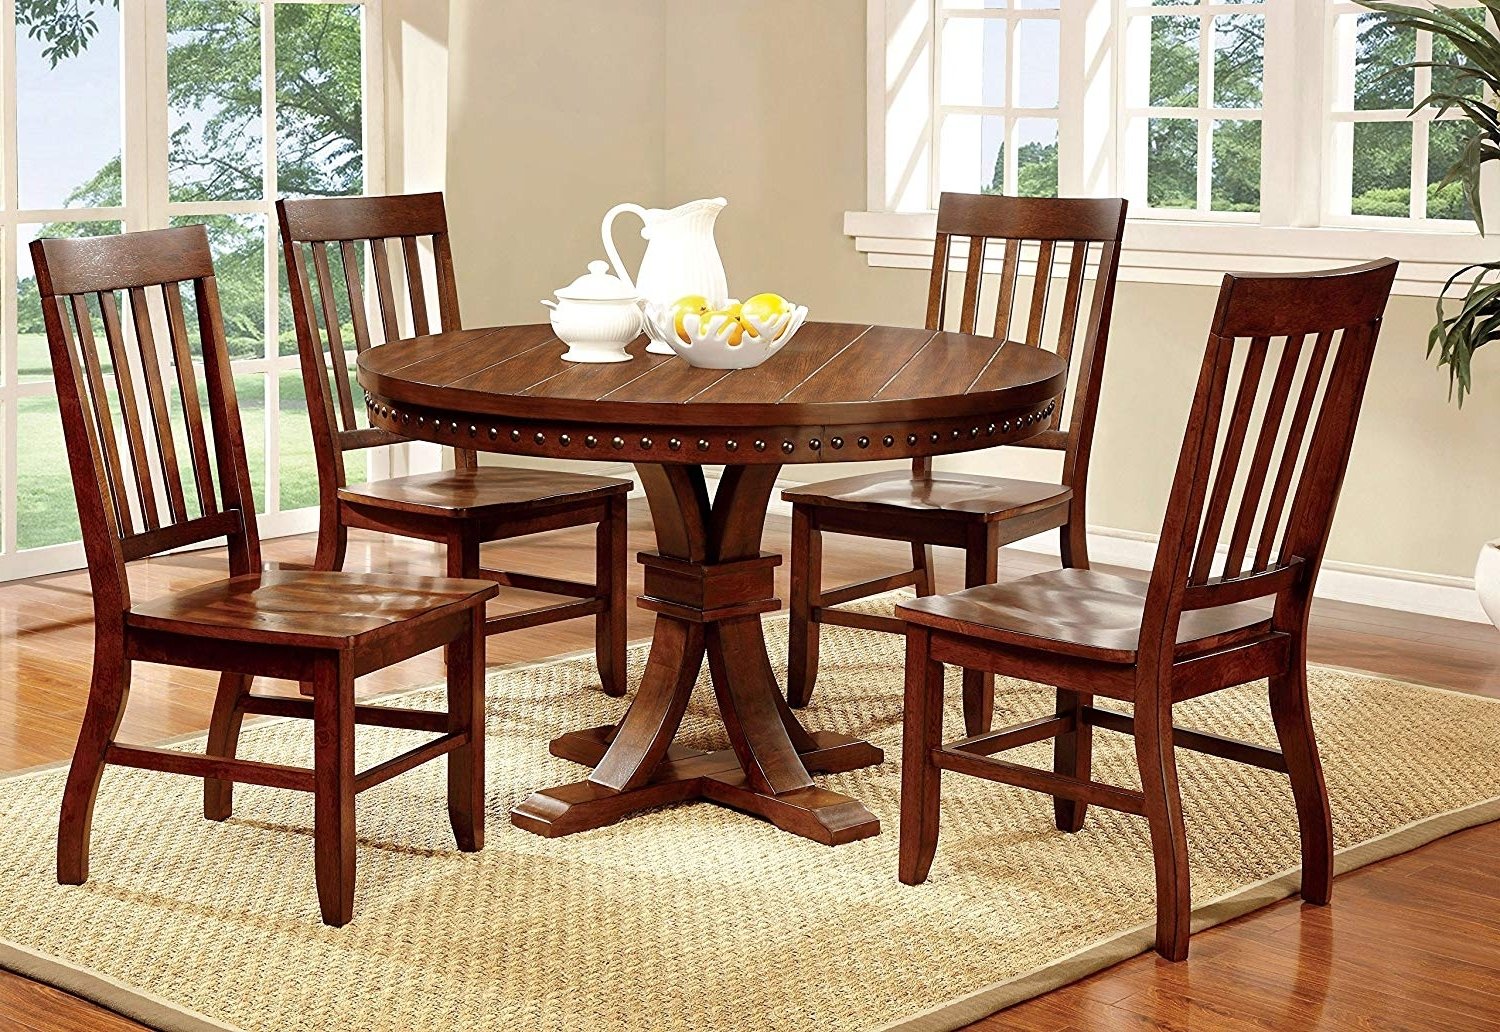 Cheap Dining Tables And Chairs With Regard To Most Current Amazon – Furniture Of America Castile 5 Piece Transitional Round (Gallery 5 of 25)